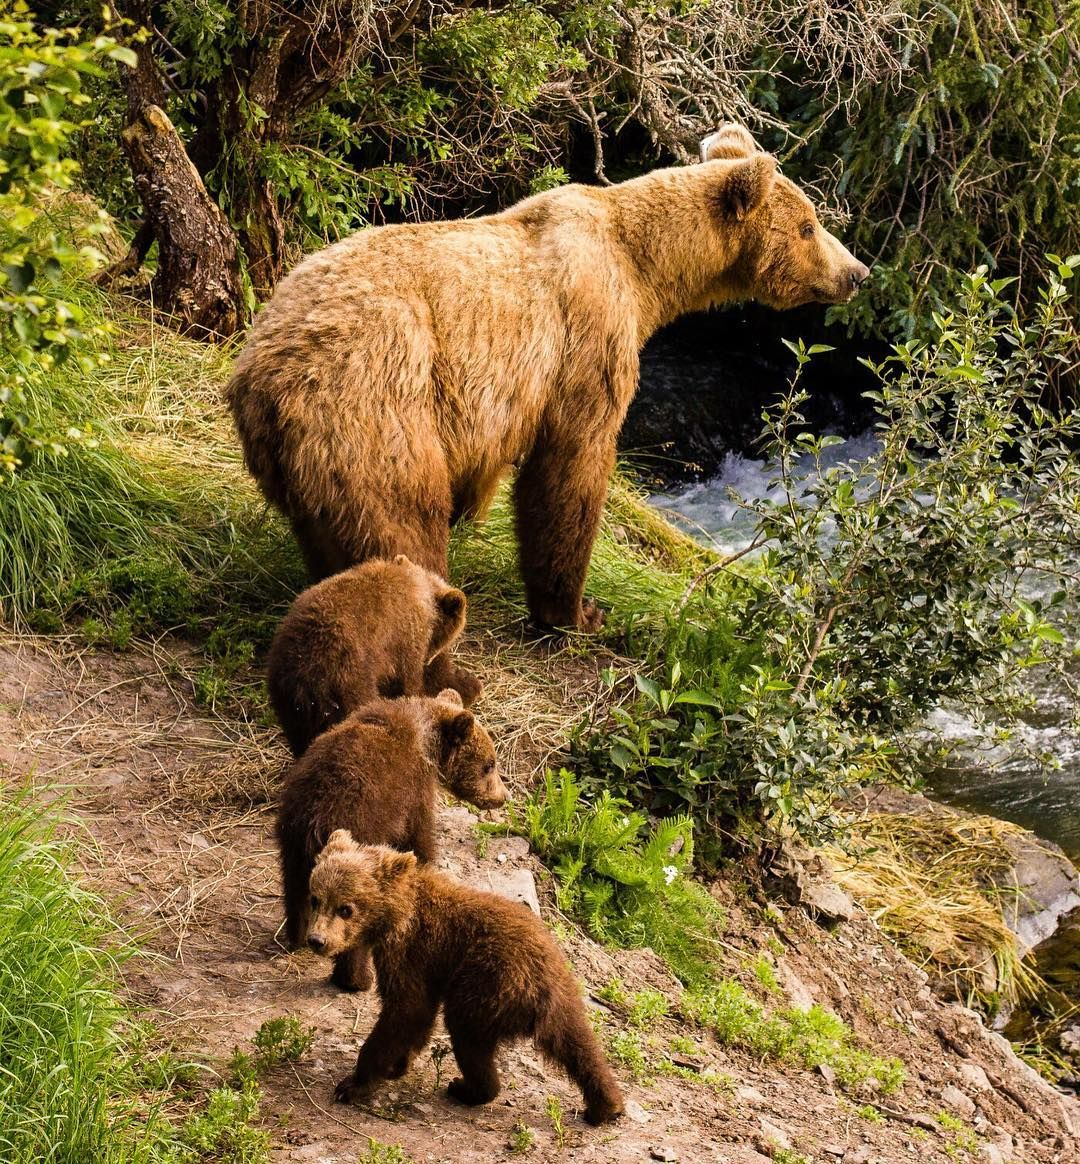 When Temperatures Warm Up And Food Is Available Brown Bears Slowly Begin To Leave Their Dens